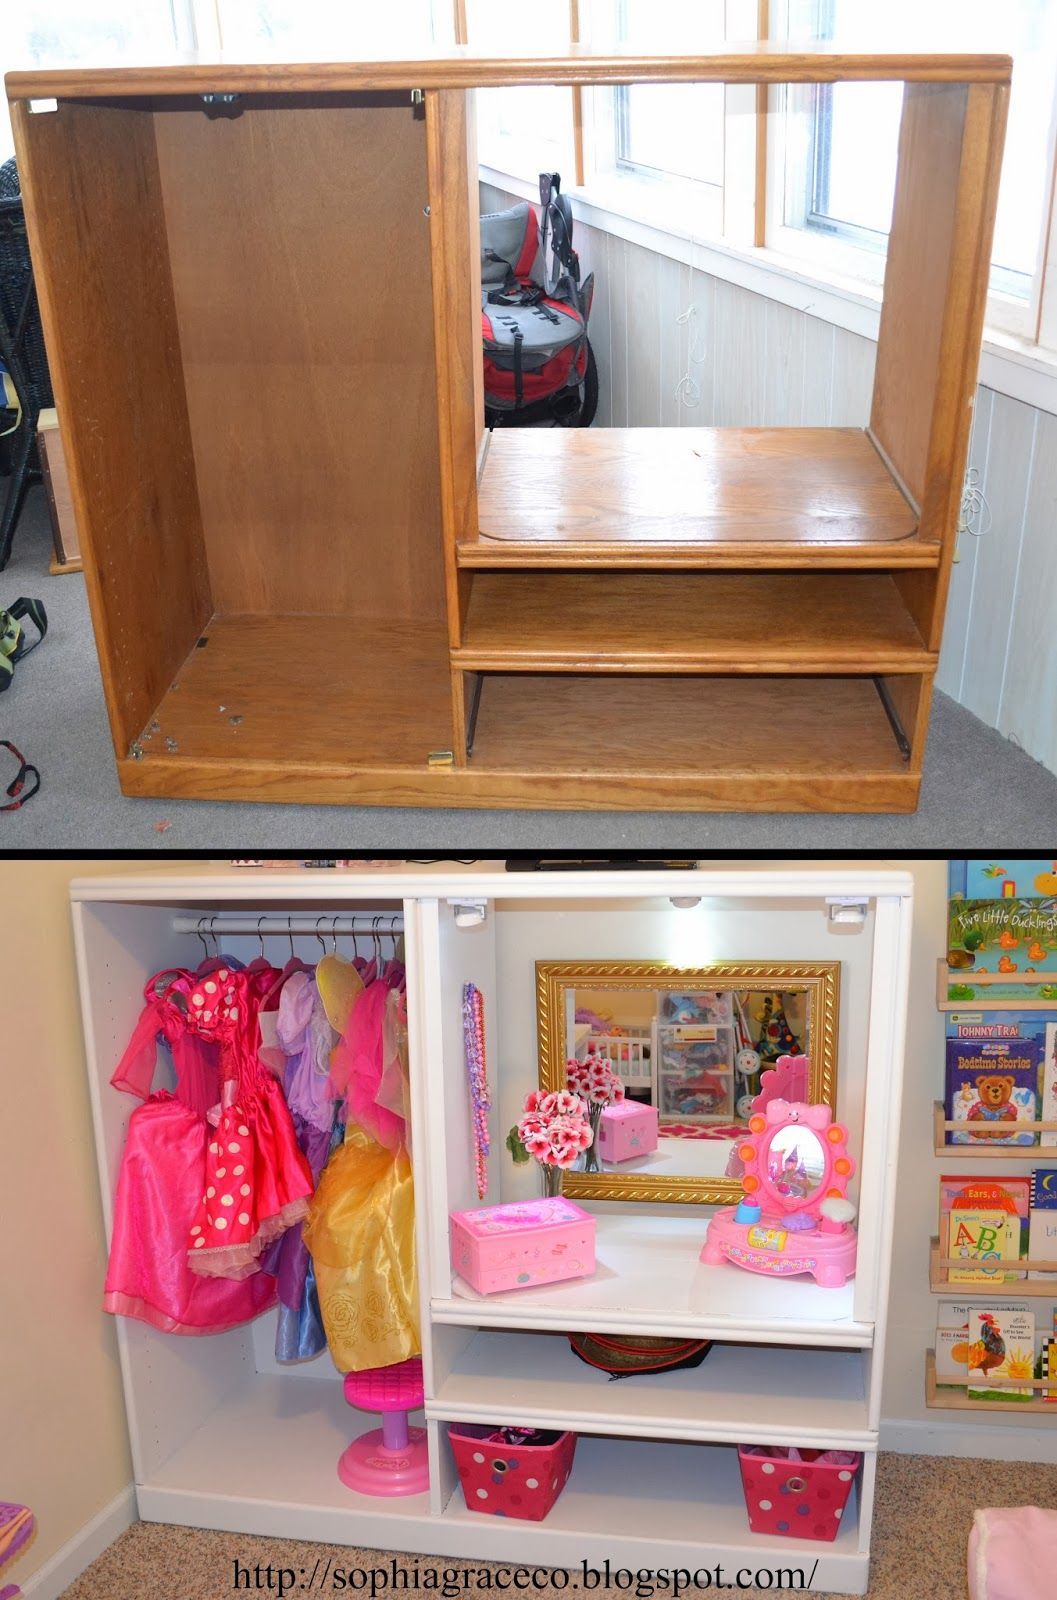 Ordinaire Dress Up Station For Ellieu0027s Playroom. Cute Way To Store Dress Up Clothes.  Easy Dress Up Storage Project To DIY.